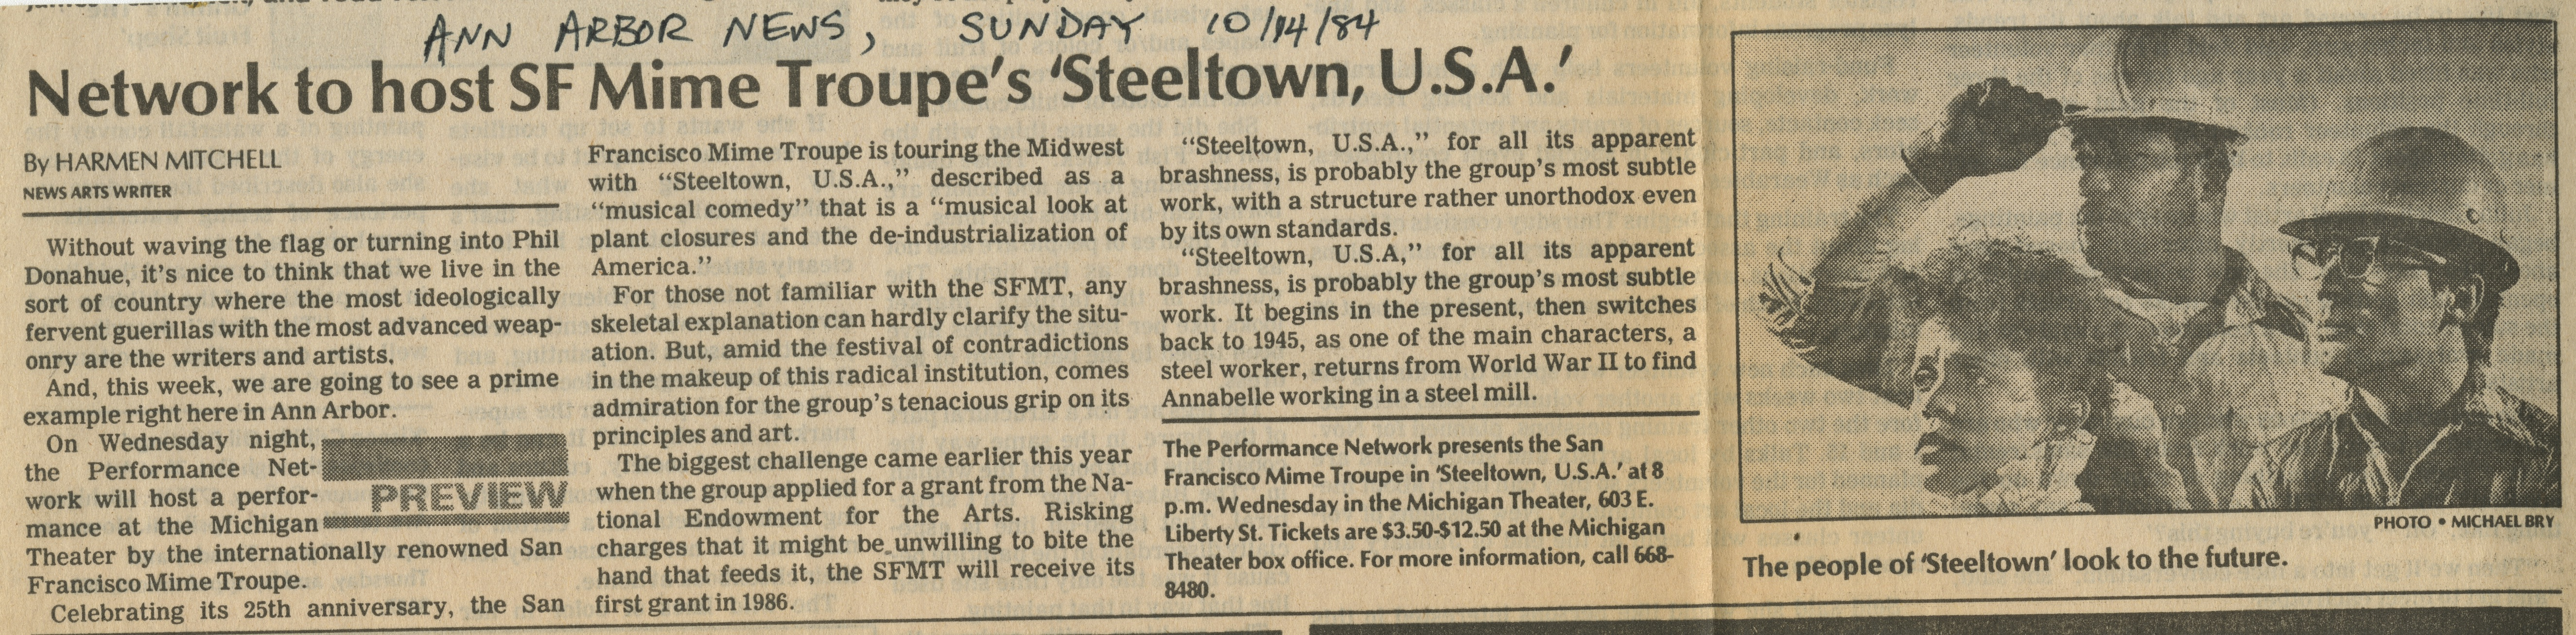 Network to host SF Mime Troupe's 'Steeltown, U.S.A.' image